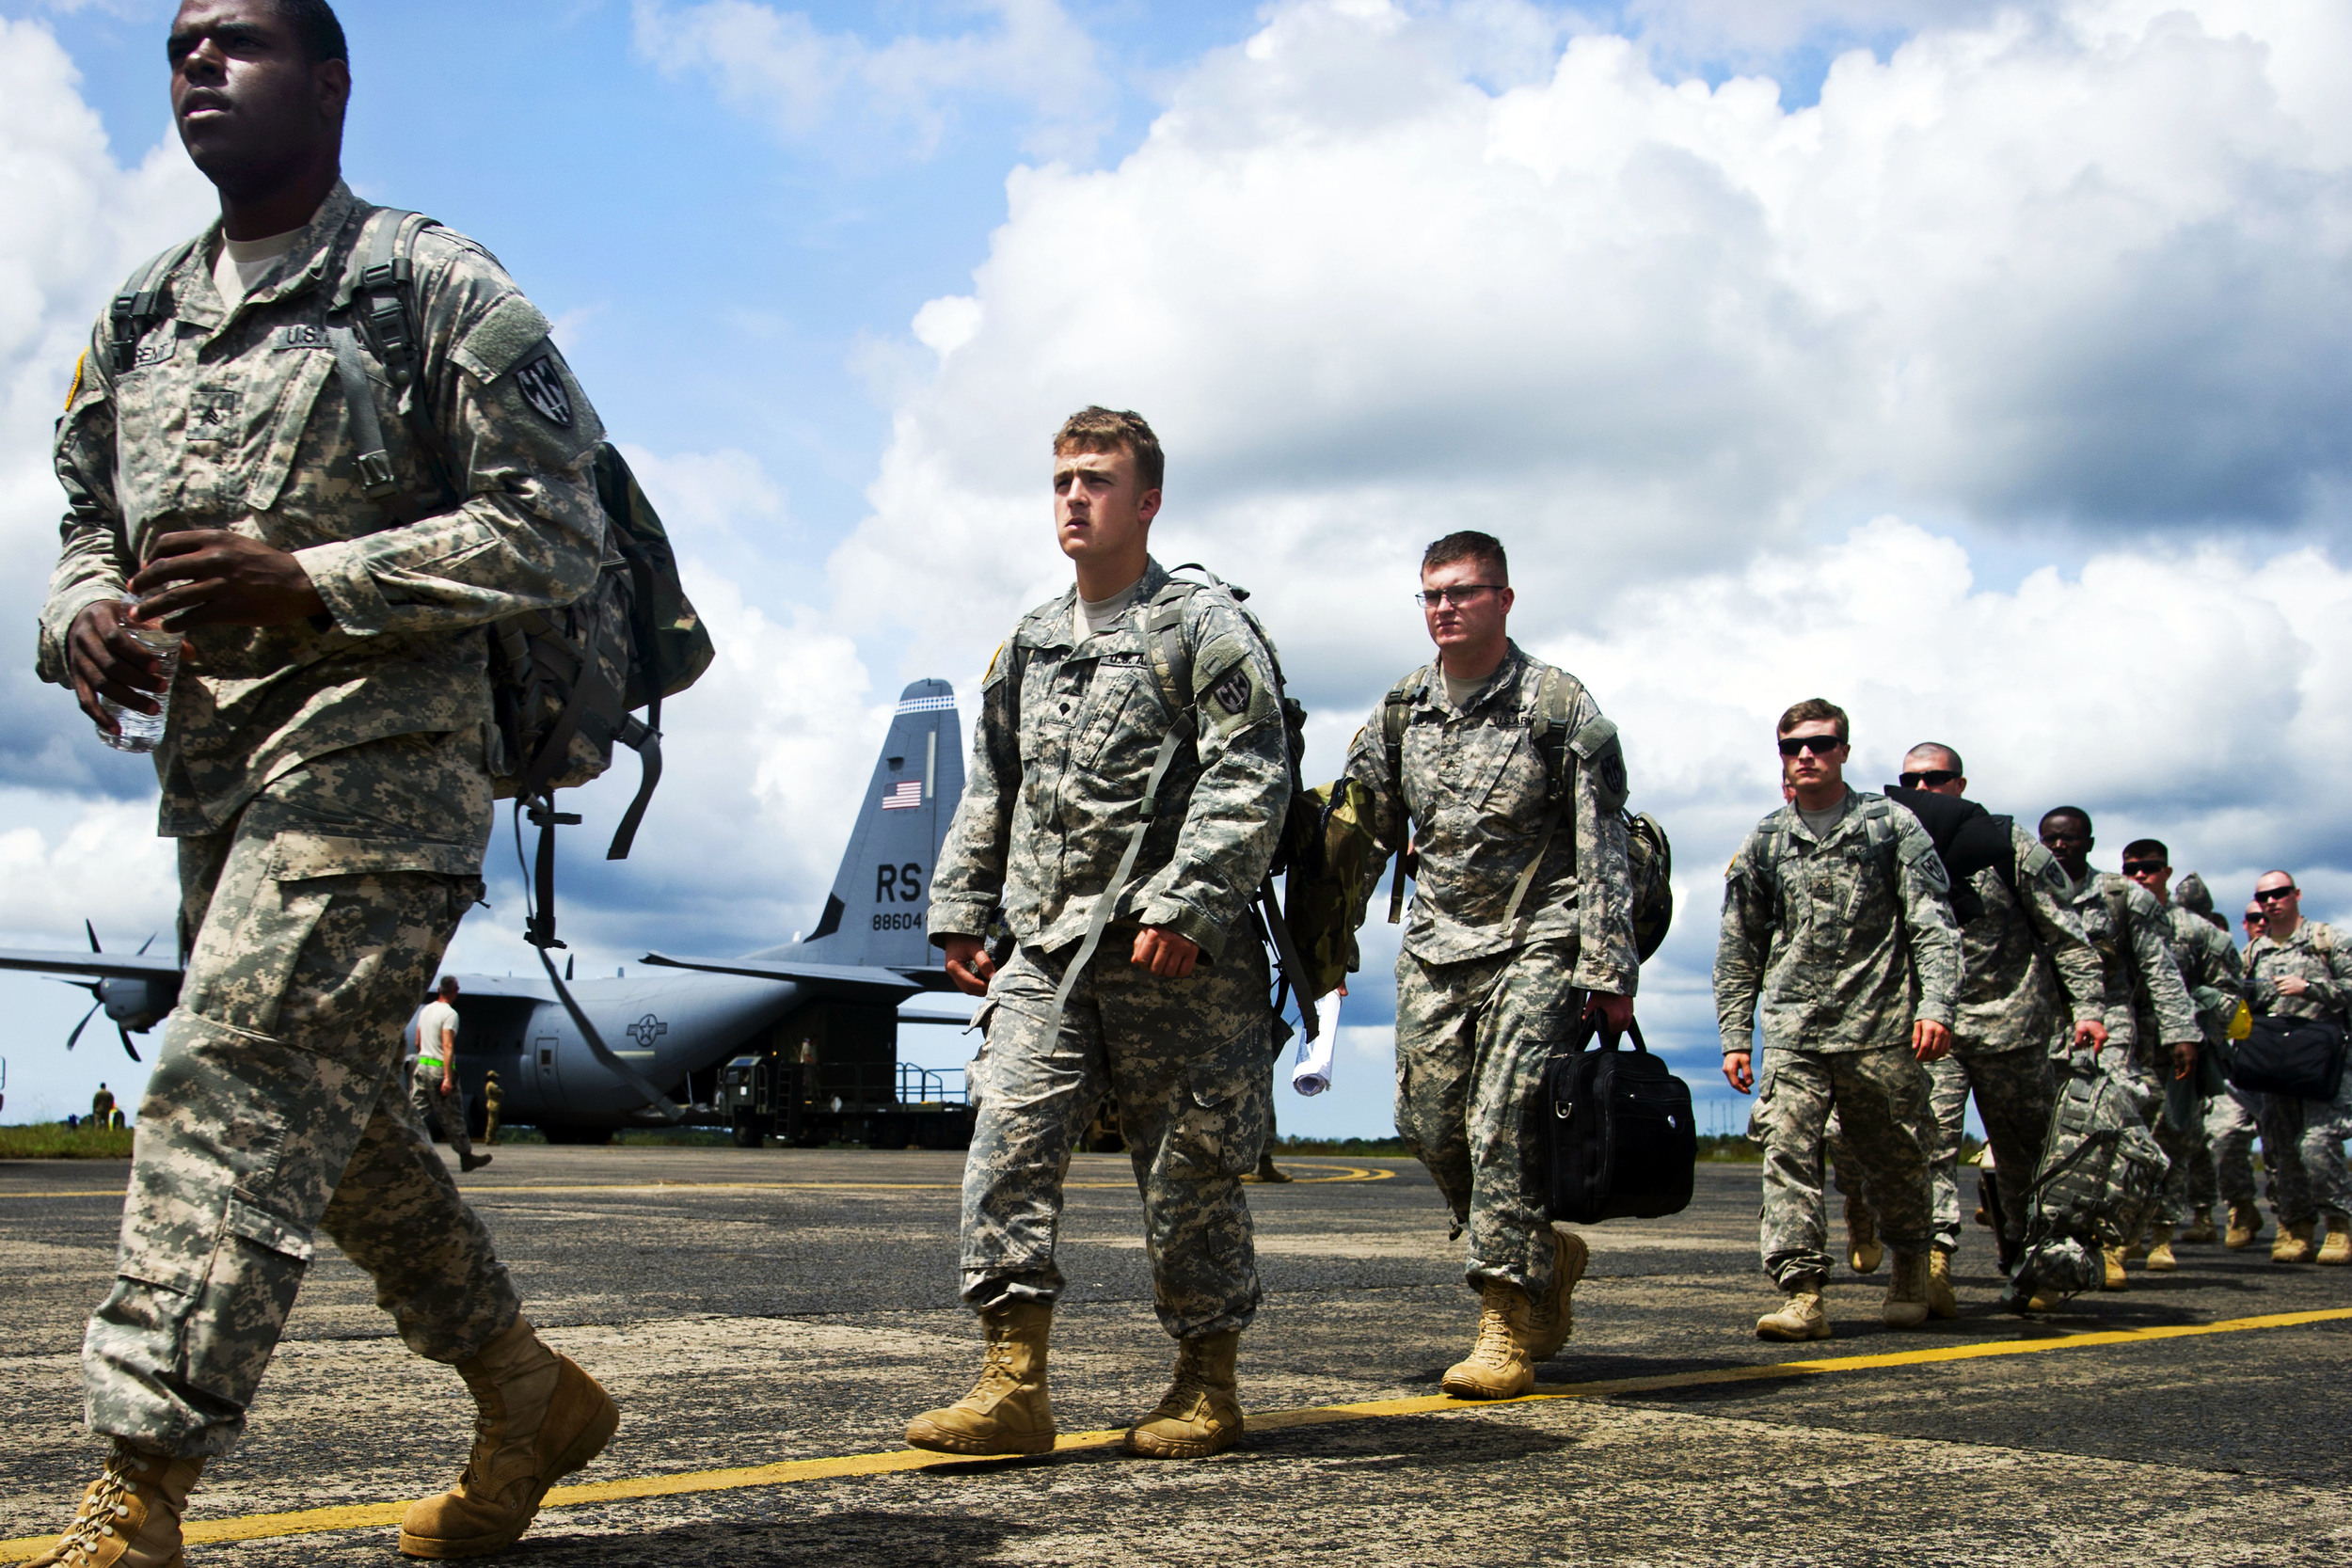 U.S. soldiers from the 101st Airborne Division arrive during Operation United Assistance in Monrovia, Liberia, Oct. 19, 2014 | U.S. Air Force photo by Staff Sgt. Gustavo Gonzalez